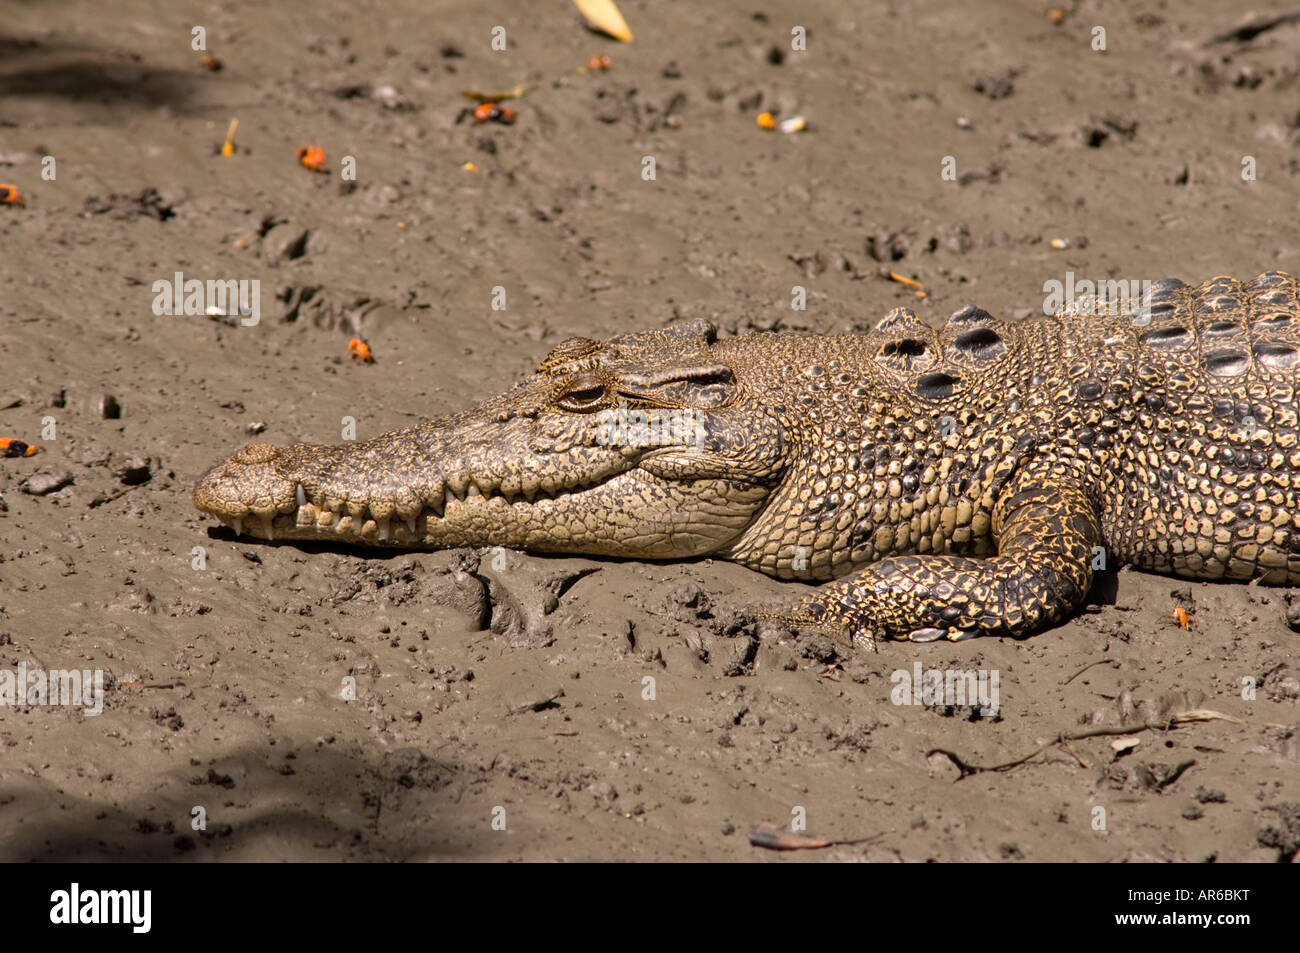 Head and front end of an Australian saltwater or estuarine crocodile - Stock Image